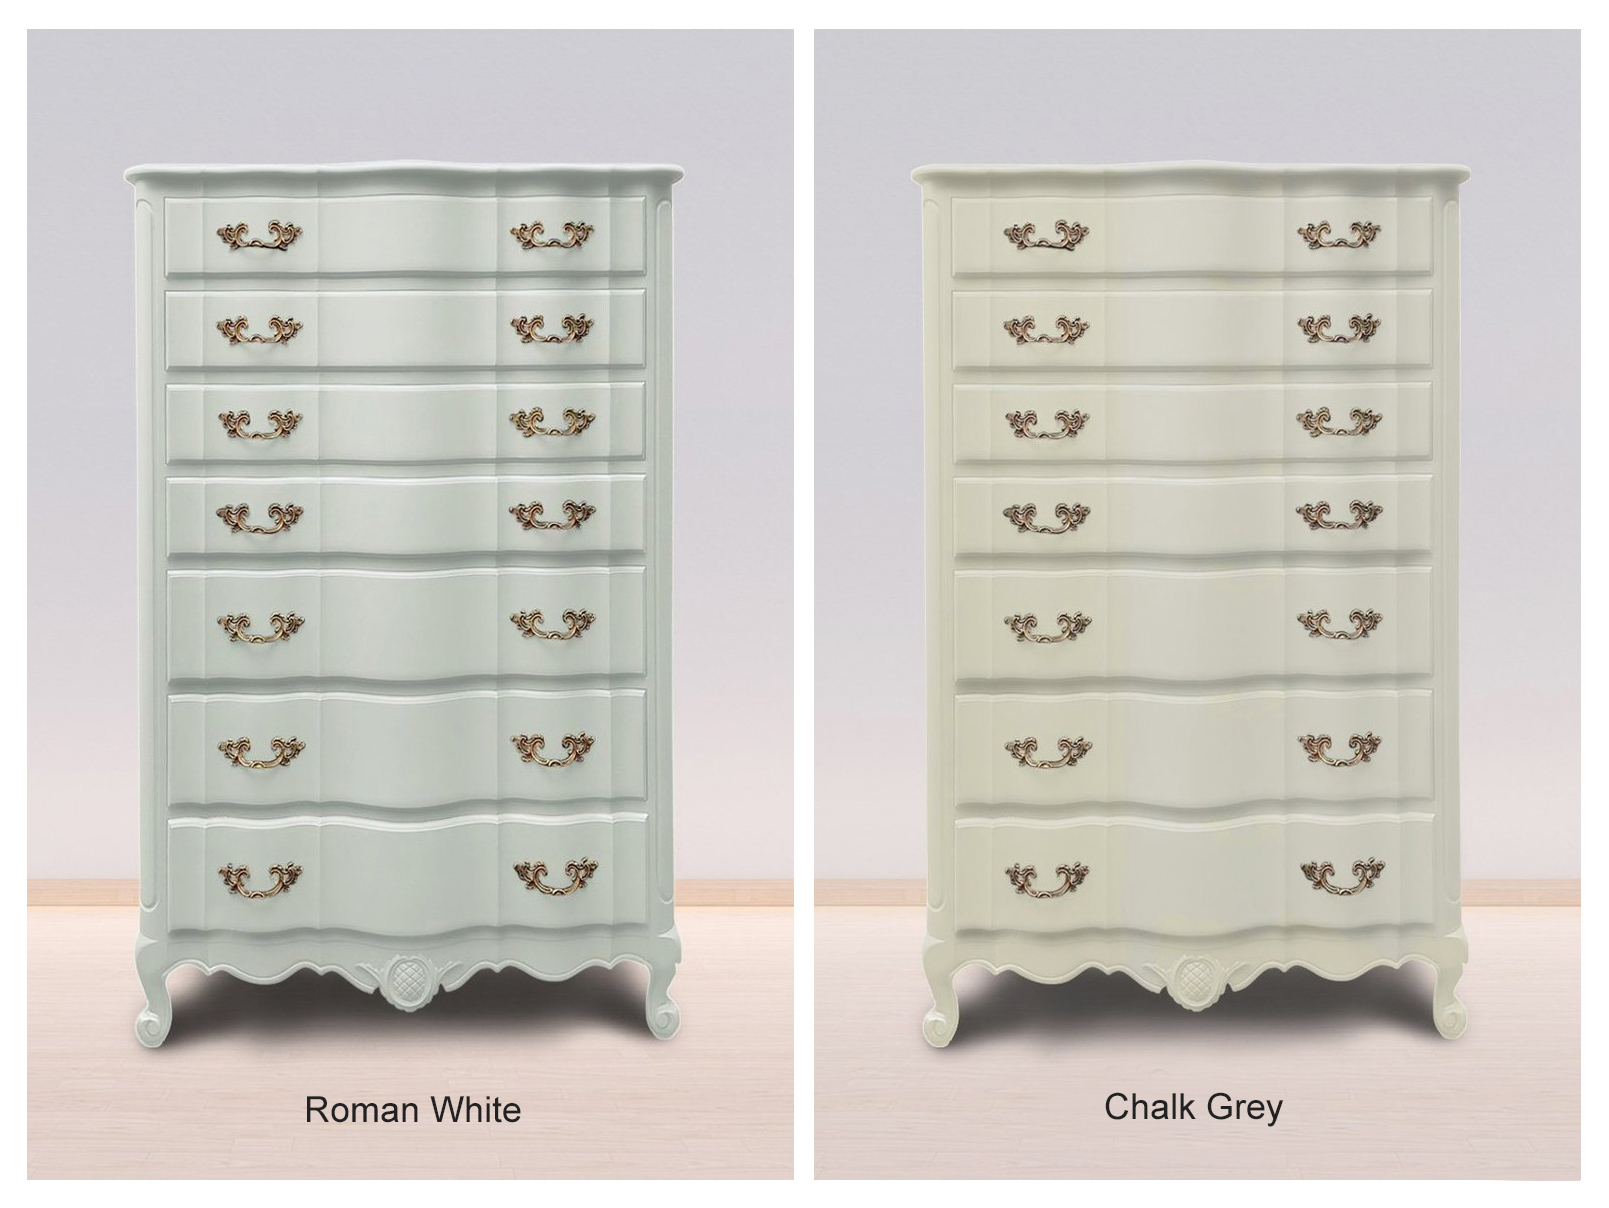 Roman White & Chalk Grey